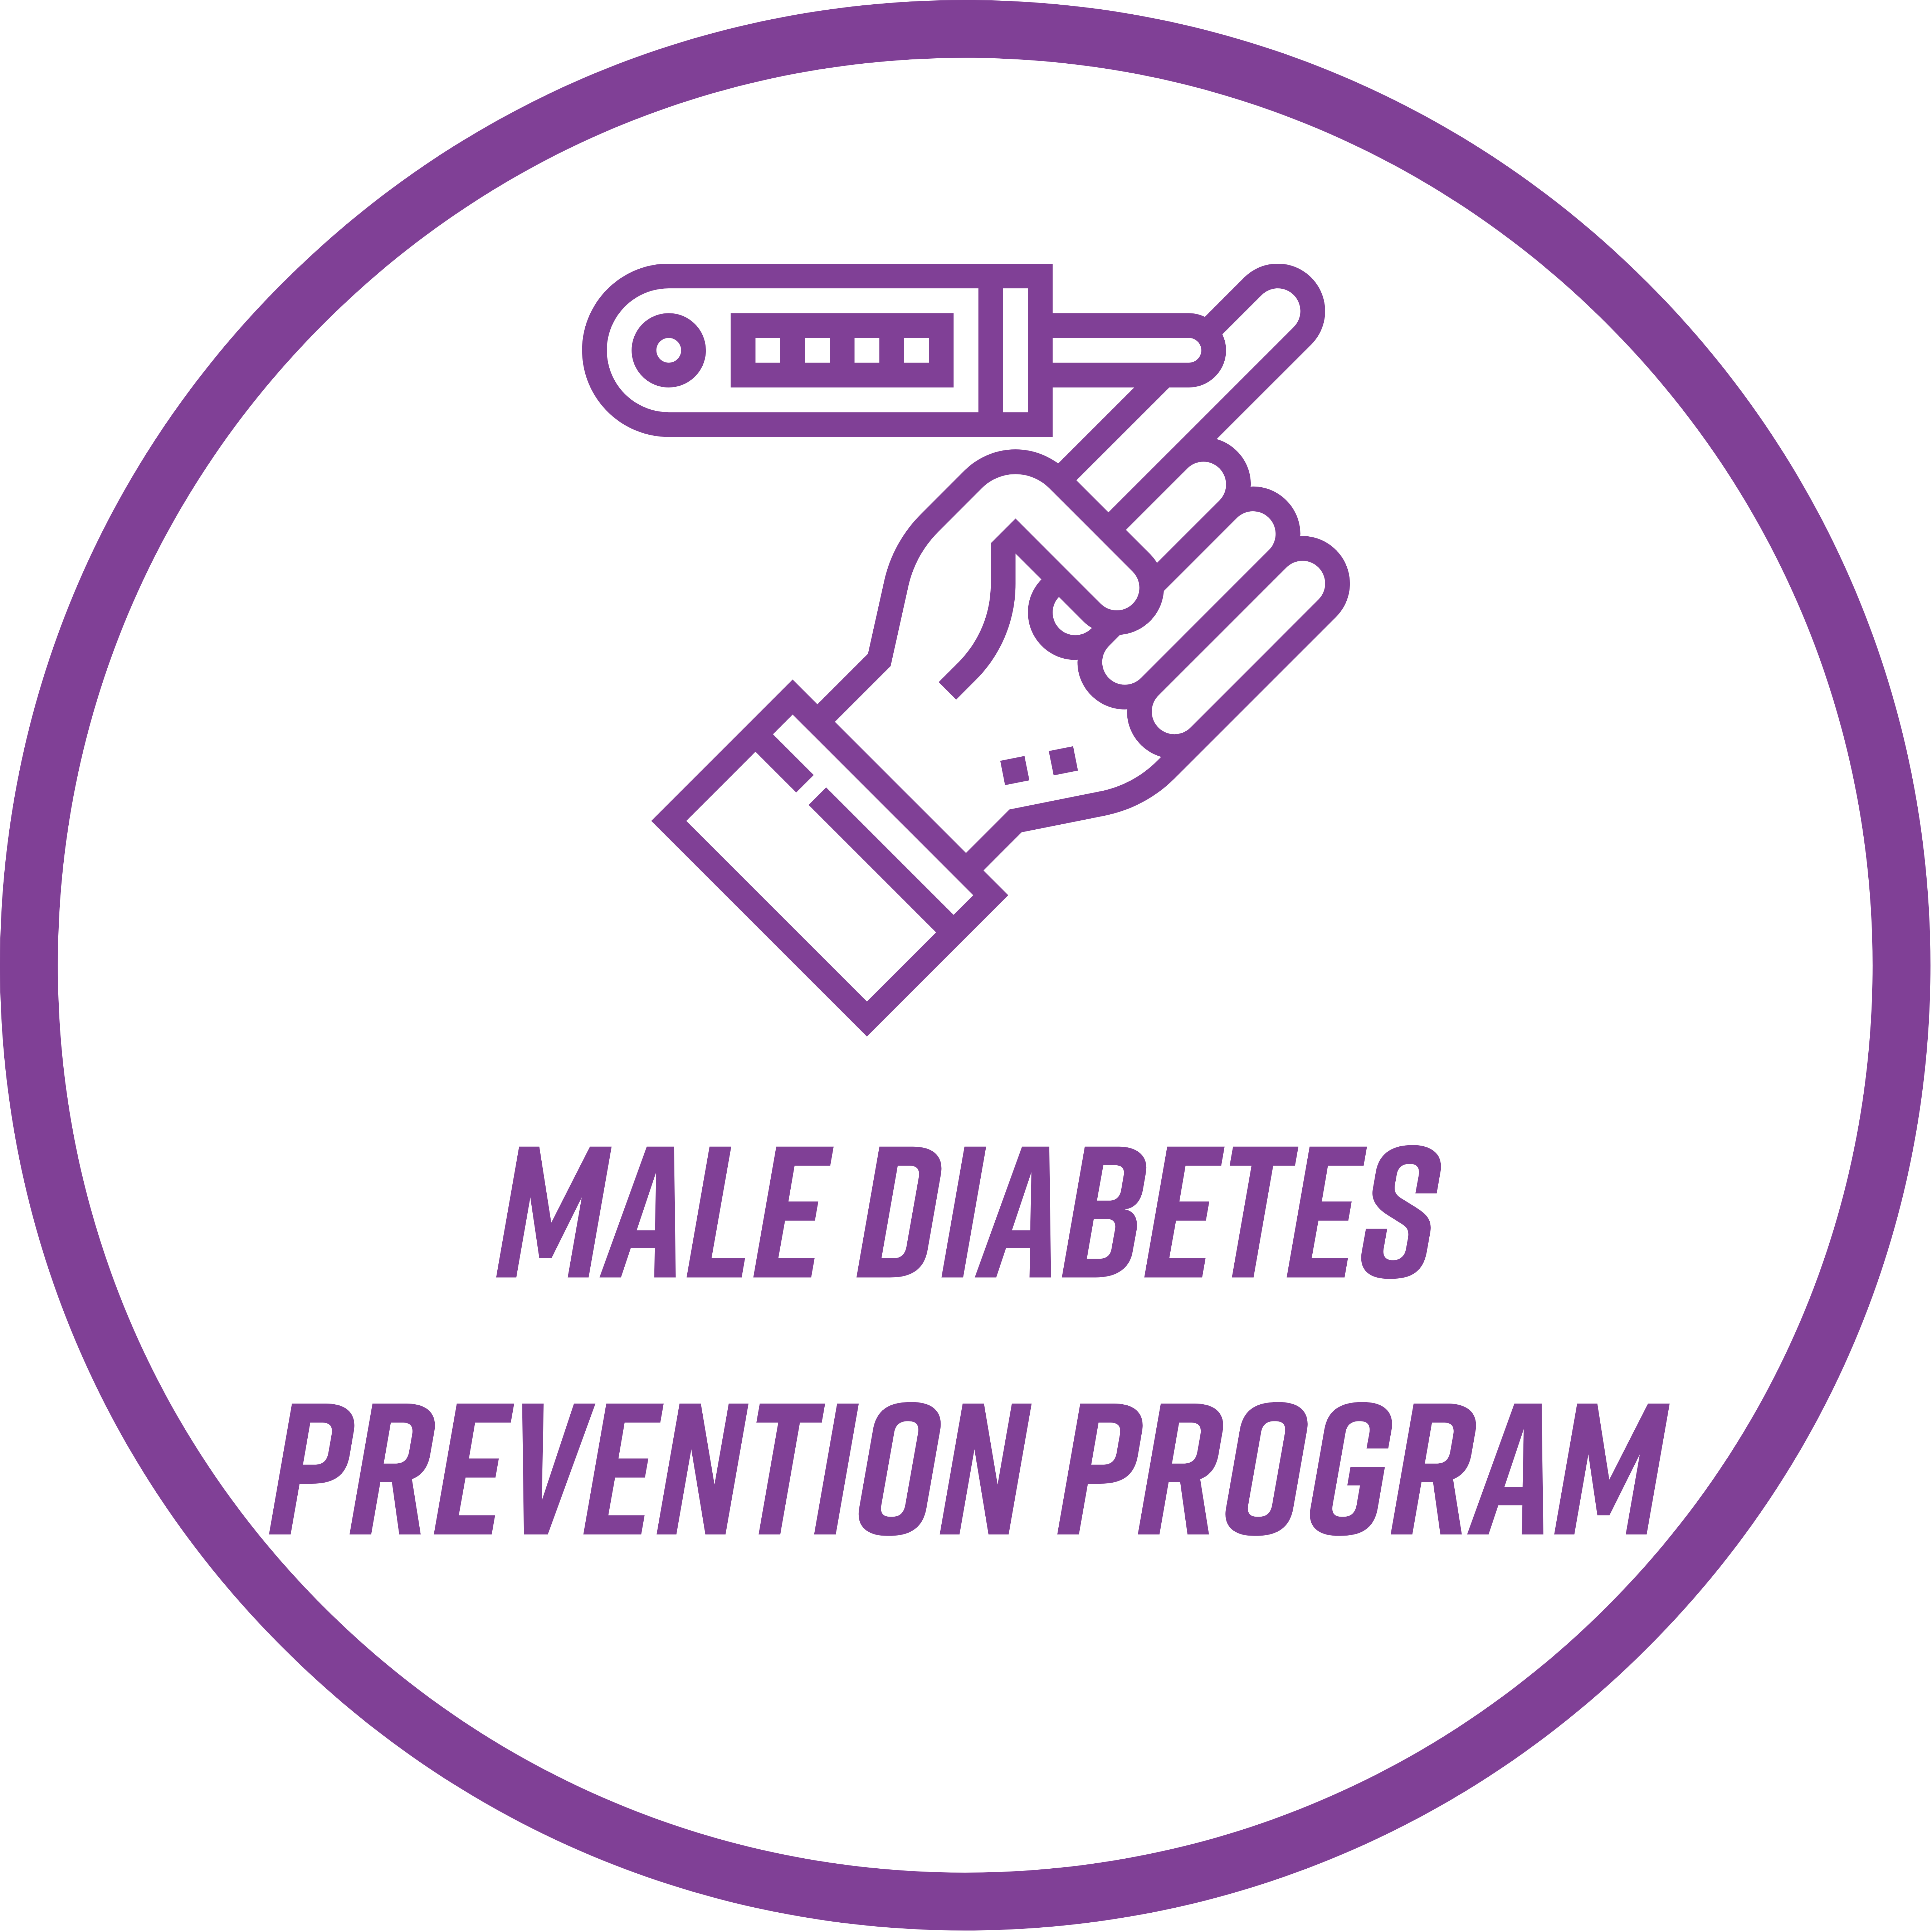 Male Diabetes Prevention